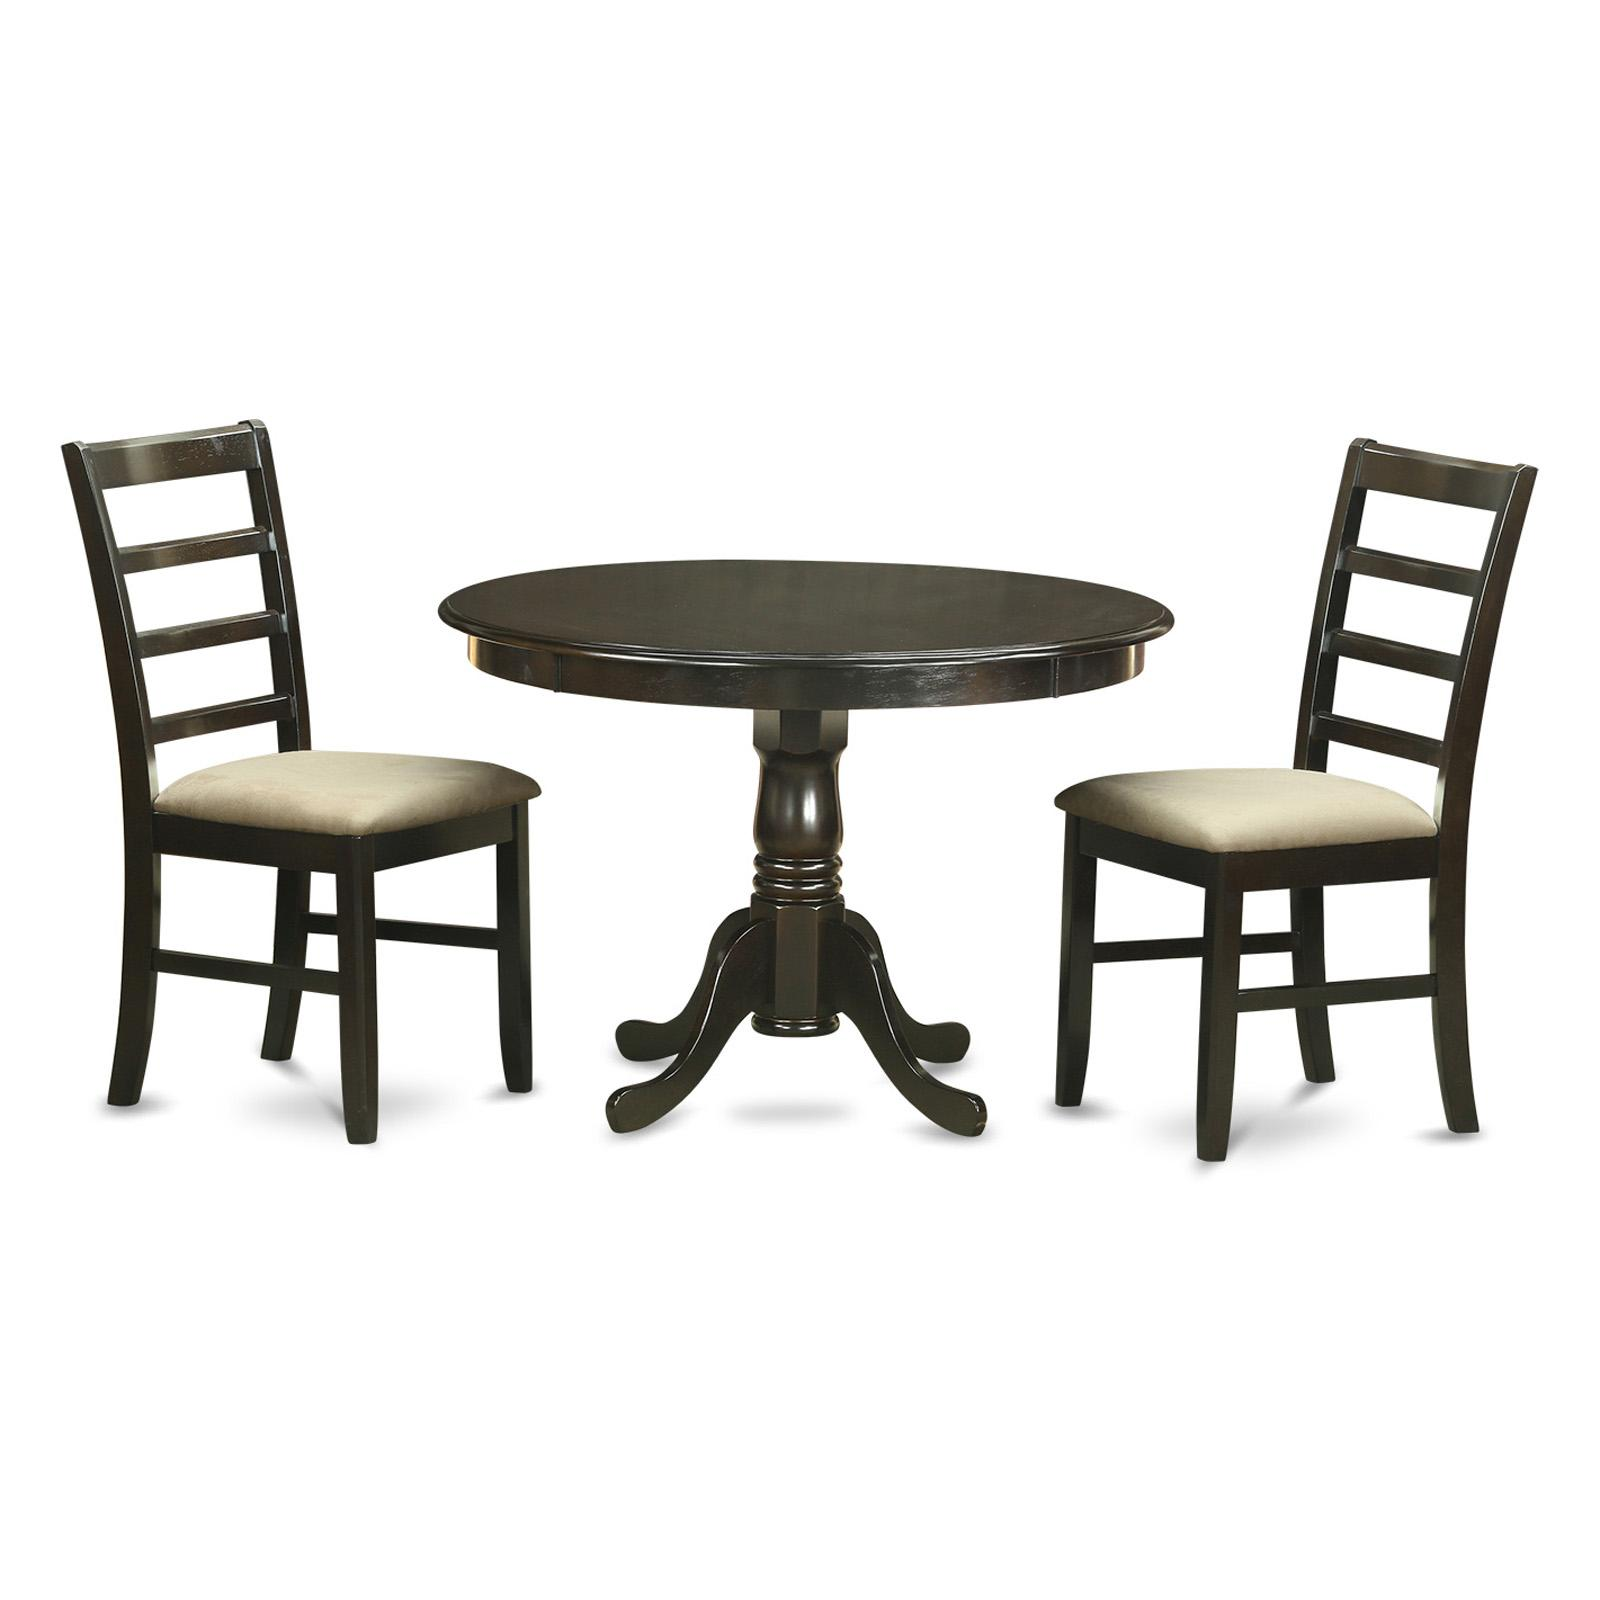 East West Furniture Hartland 3 Piece Shaker Dining Table ...